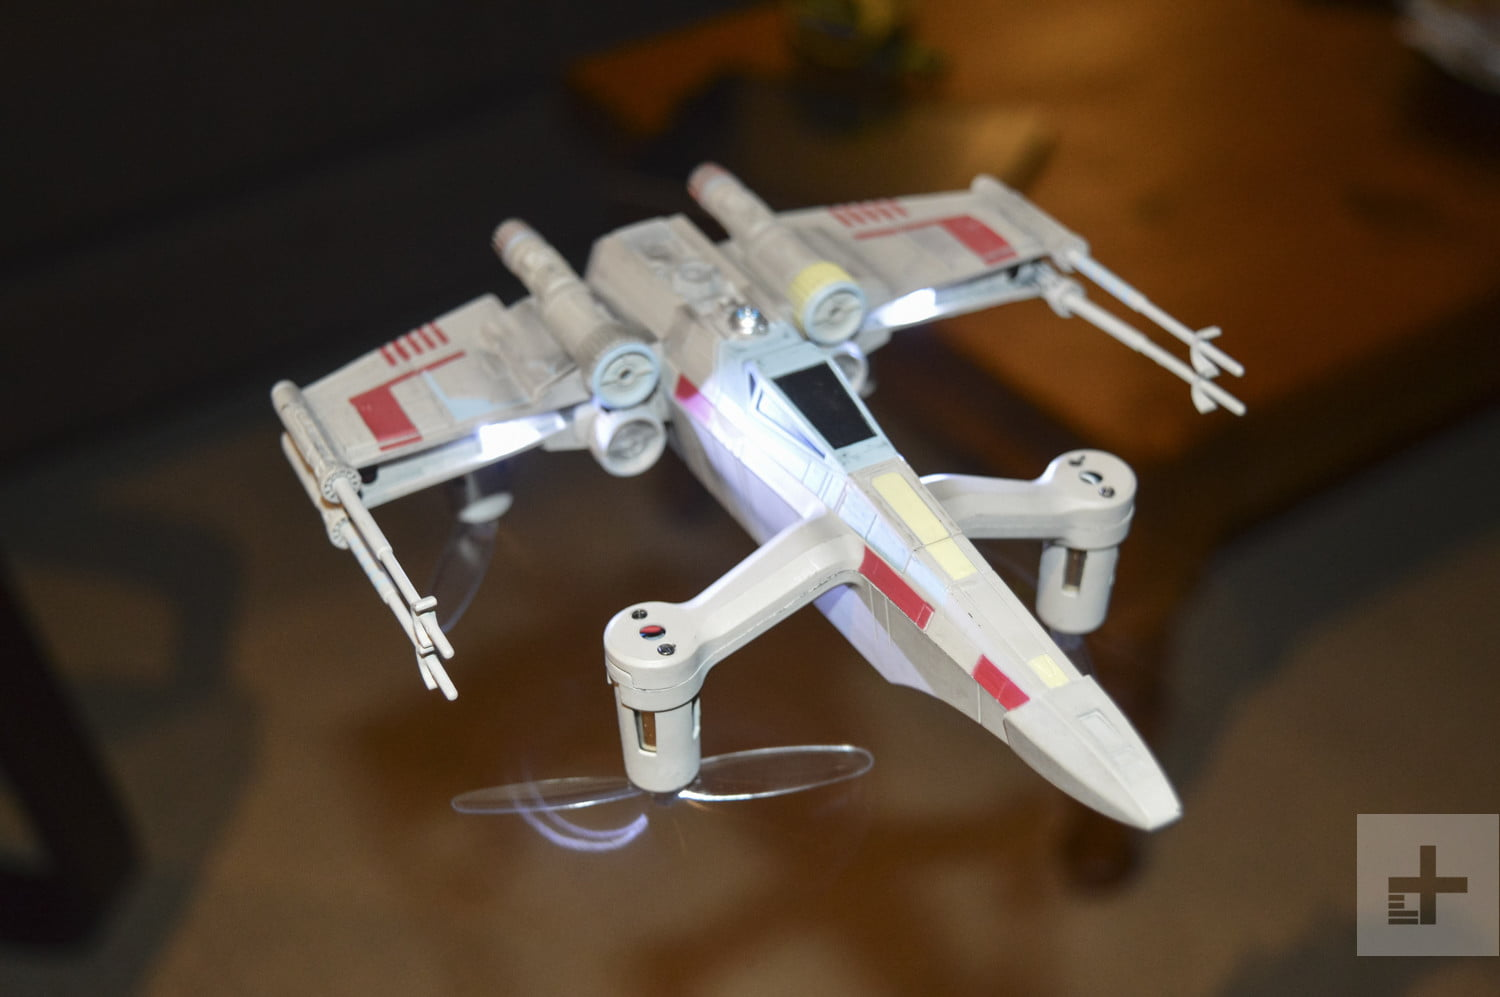 Propel Star Wars Battle Drones Review 014284